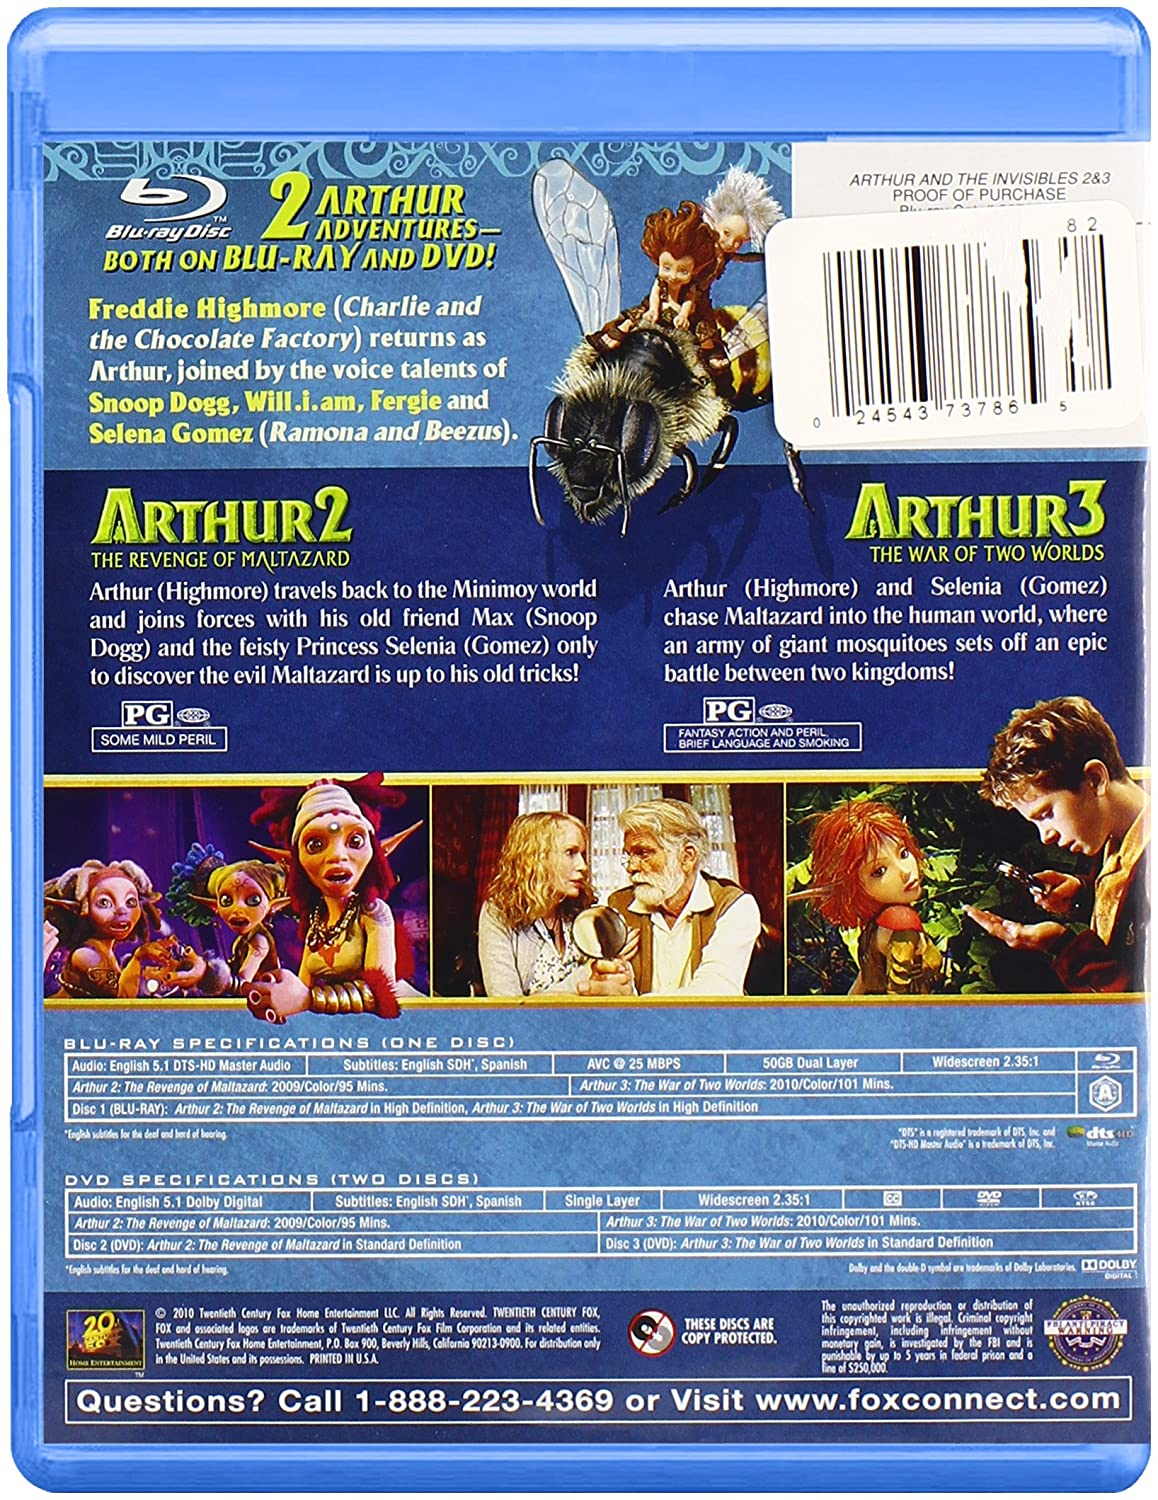 Amazon Com Arthur And The Invisibles 2 And 3 New Minimoy Adventure Blu Ray Arthur The Invisibles 2 3 New Minimoy Adventur Movies Tv